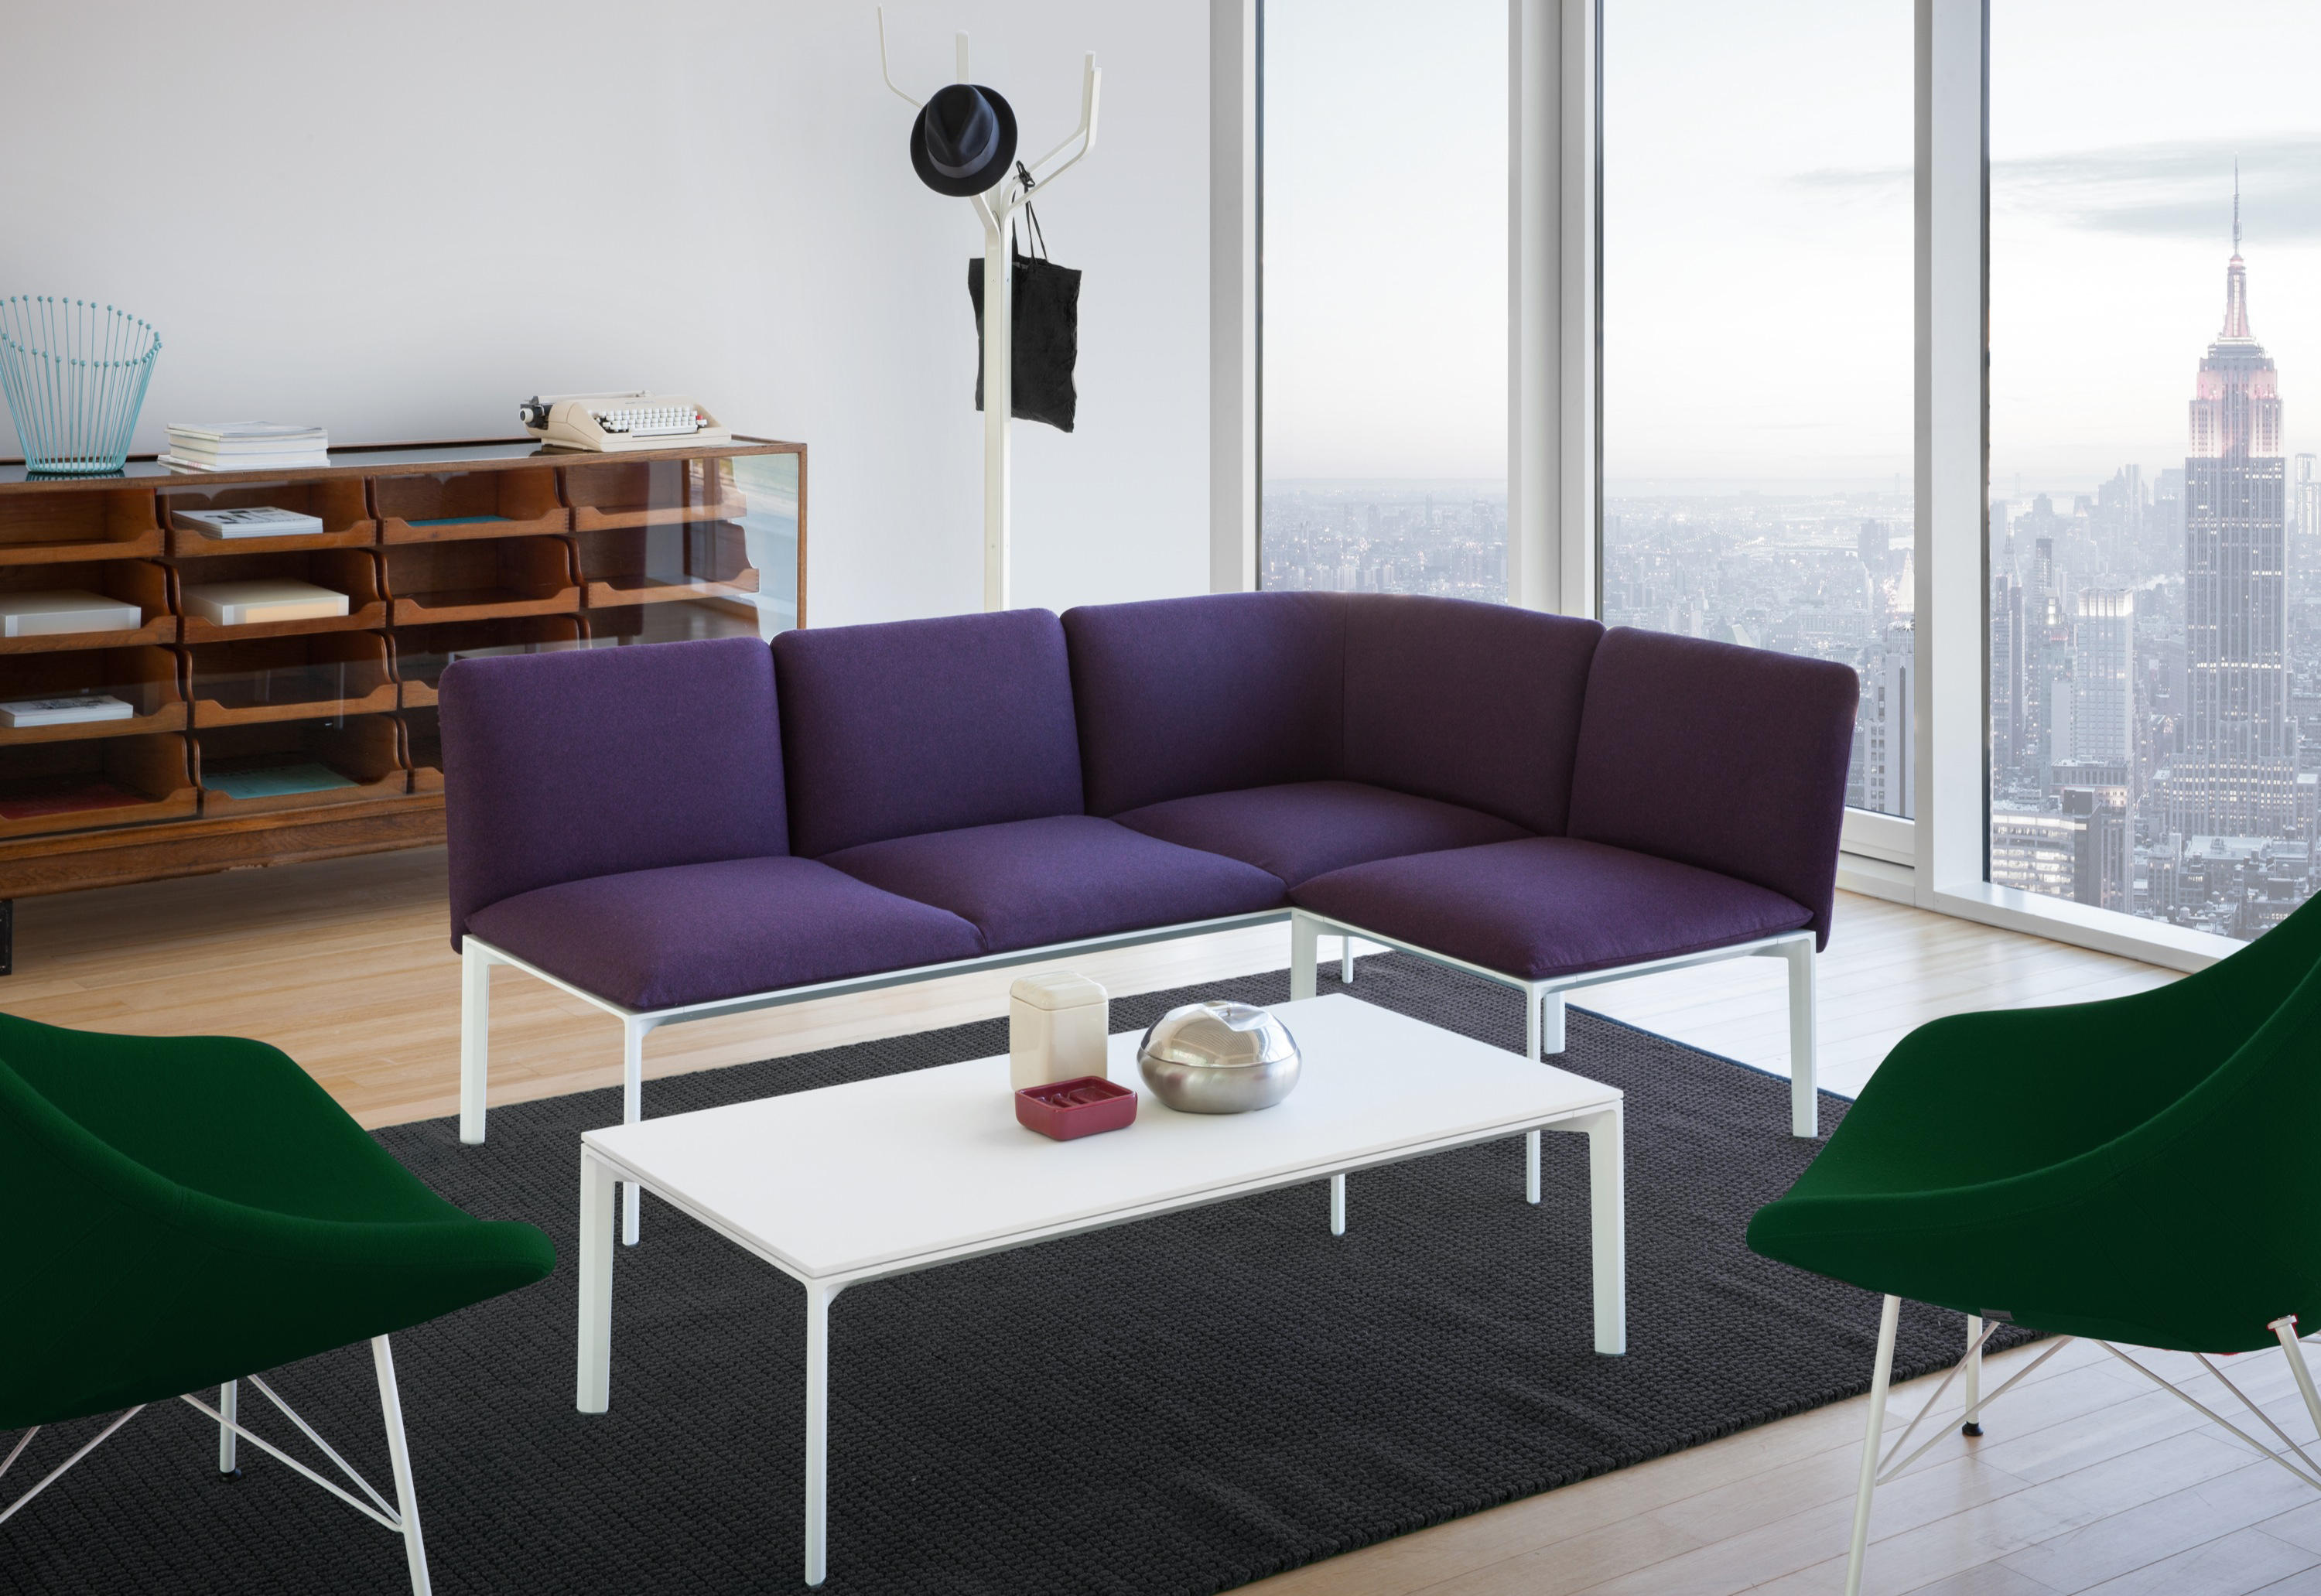 Add bench system modular seating systems from lapalma for Furniture palma